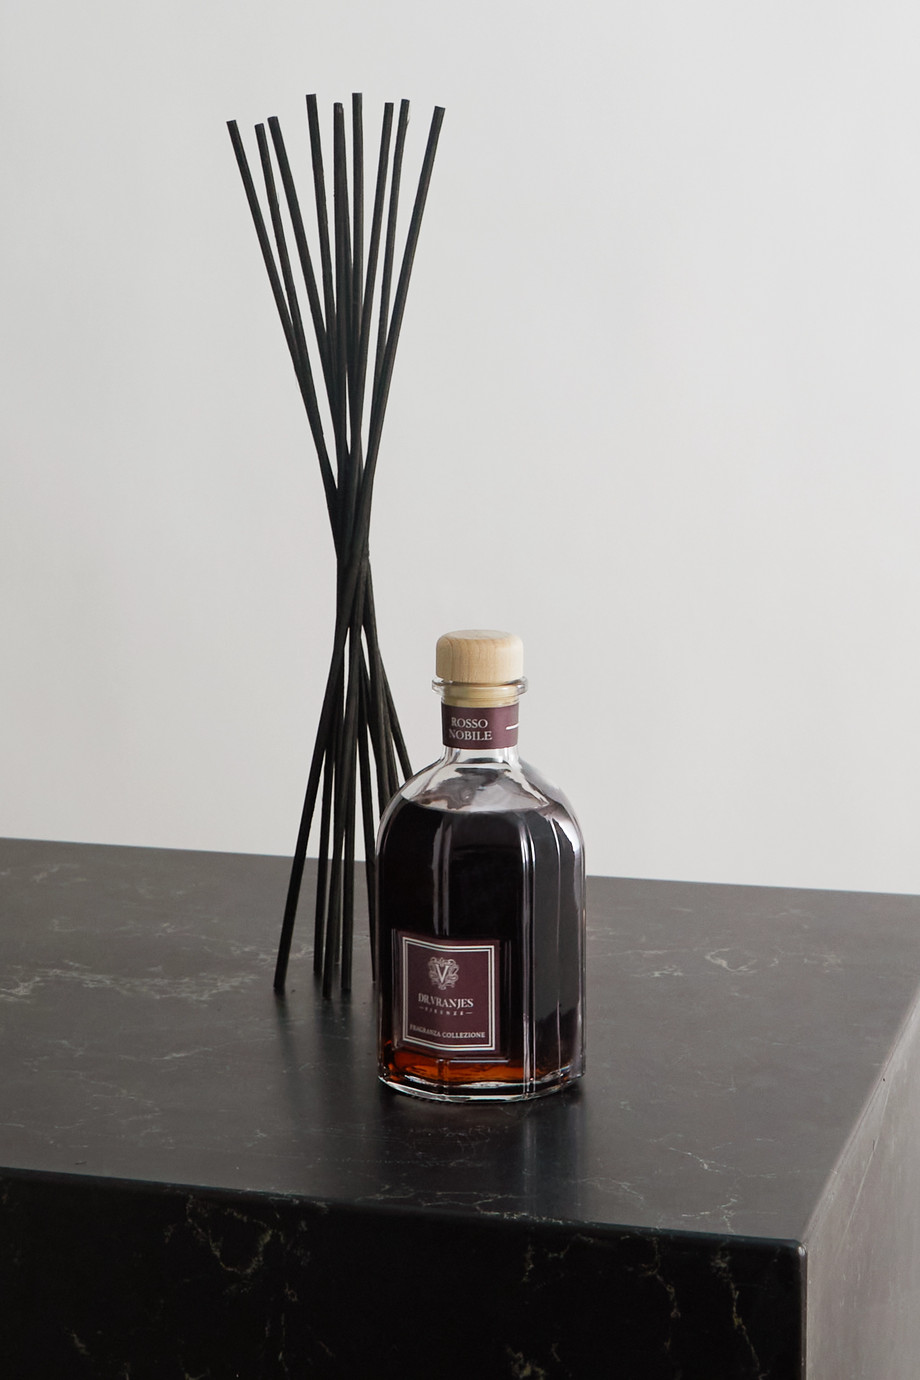 Dr. Vranjes Firenze Reed diffuser - Rosso Nobile, 250ml